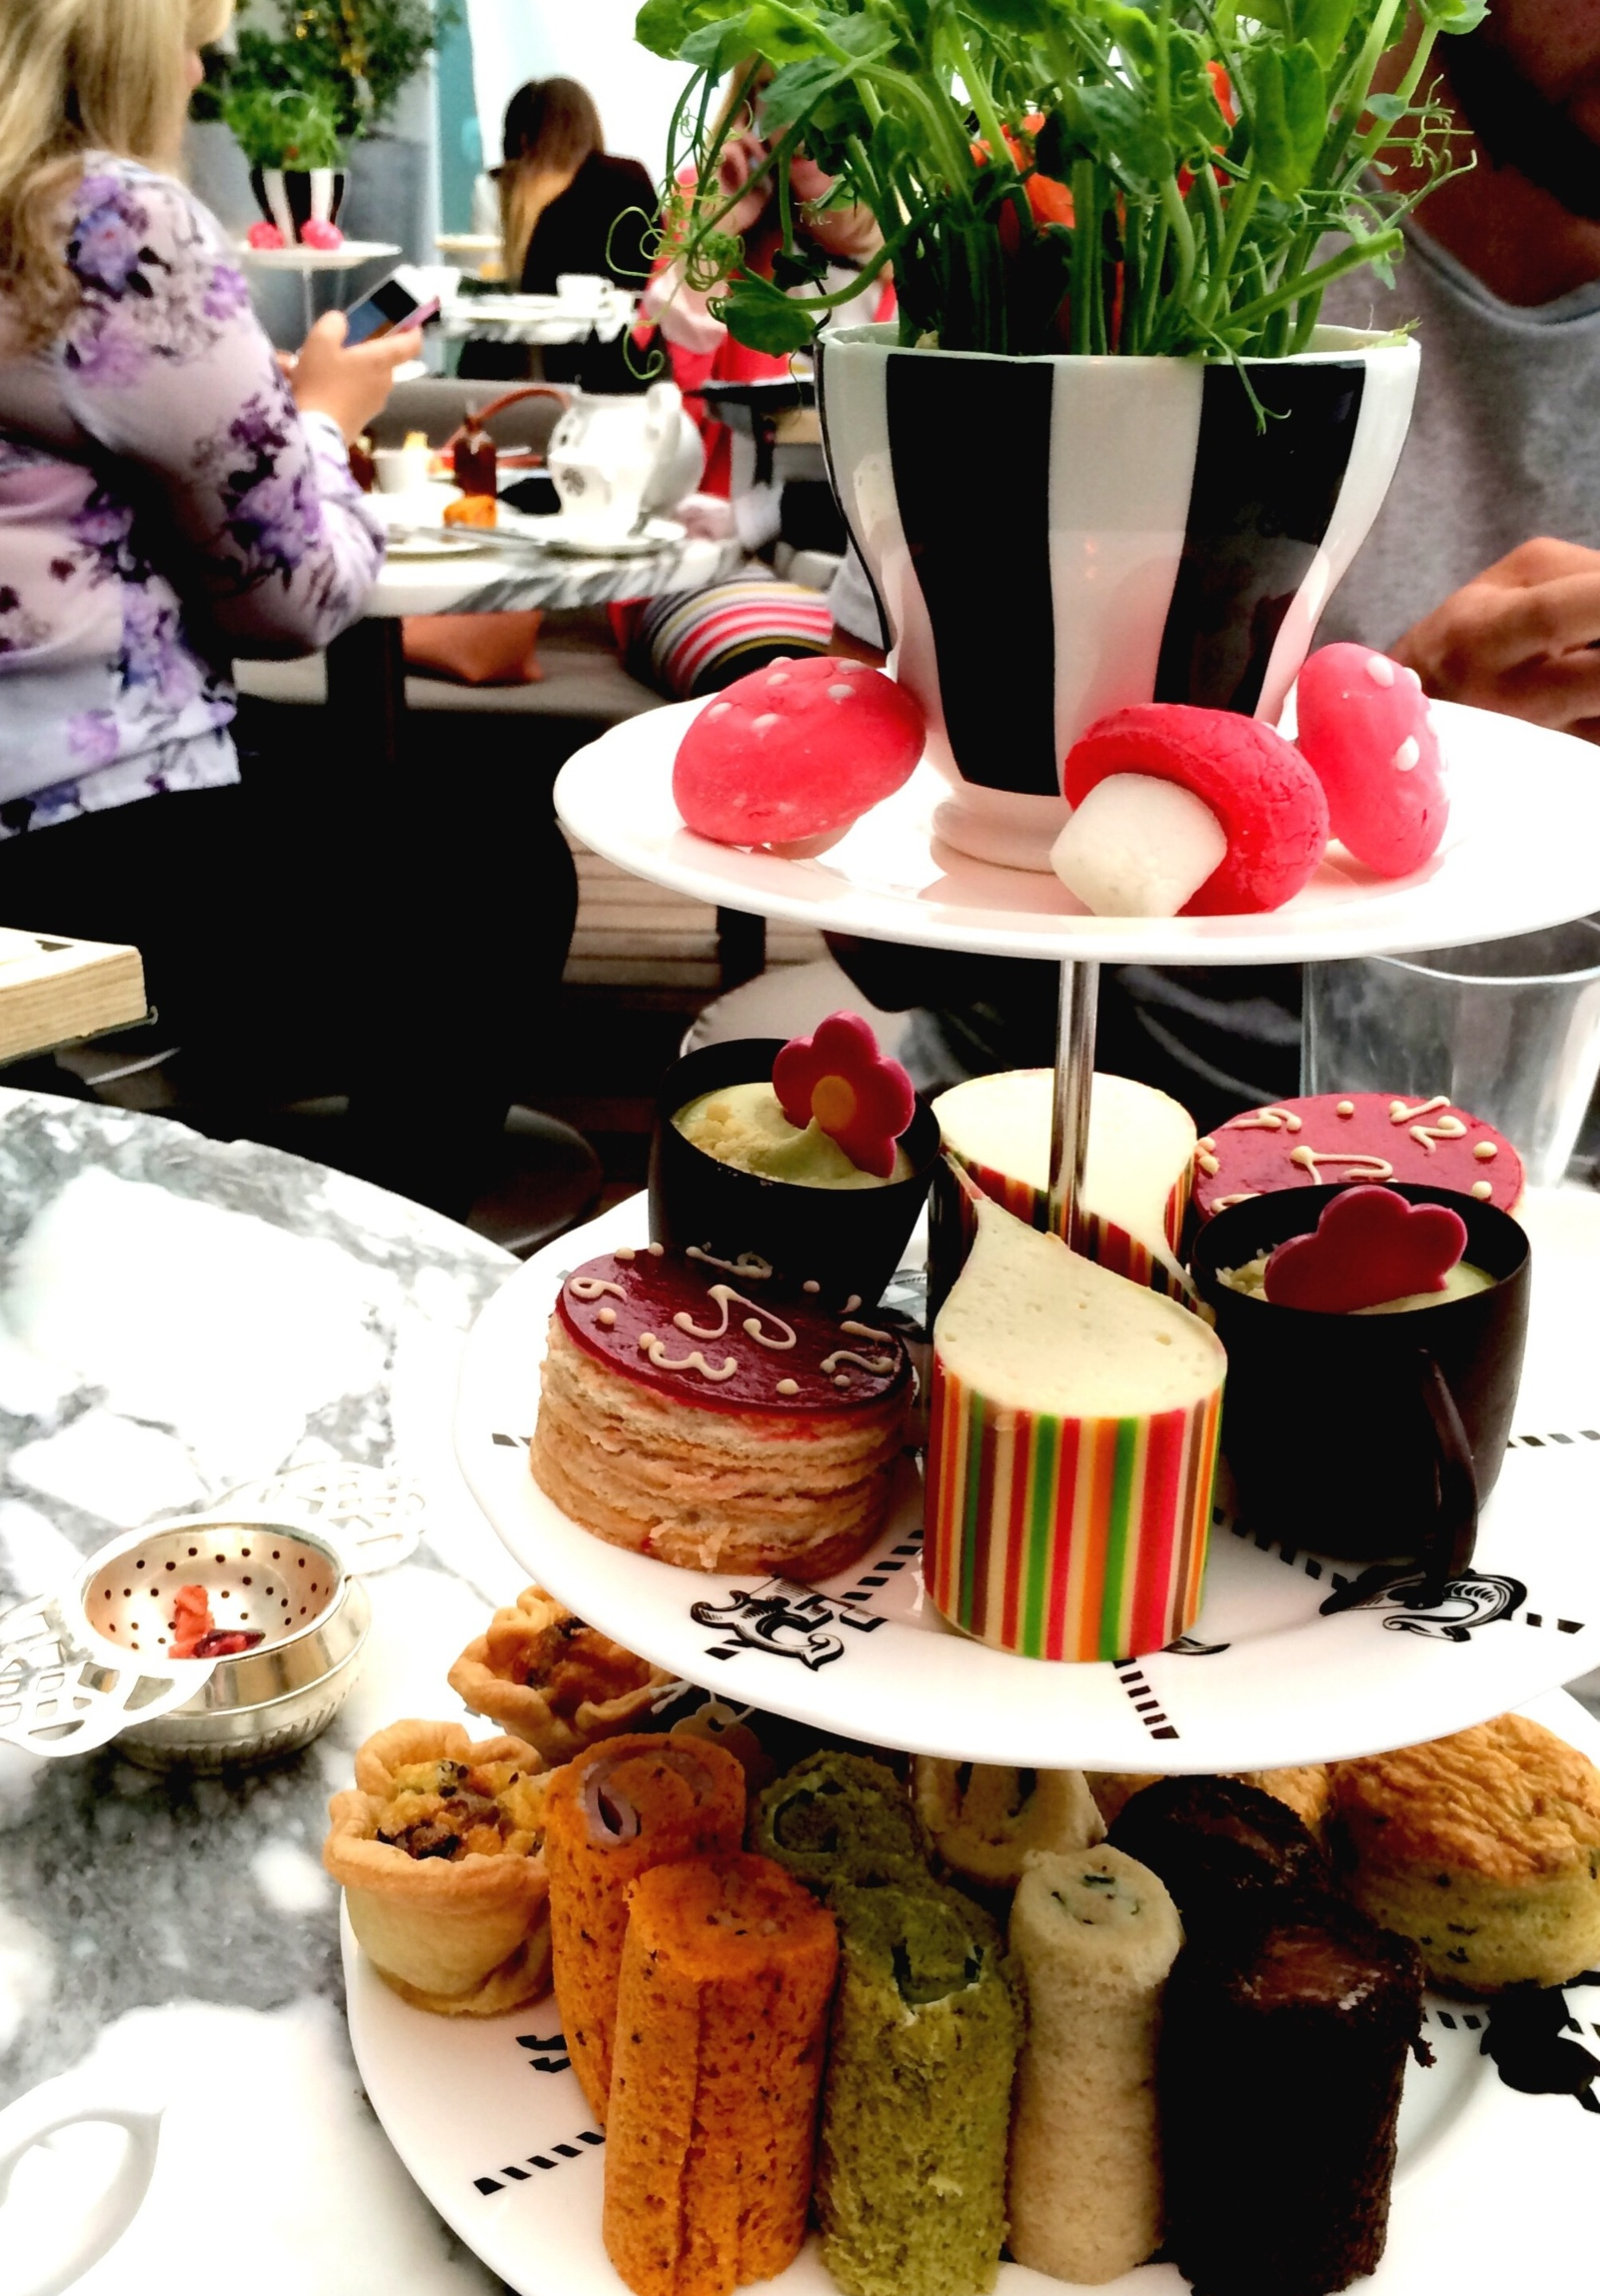 Afternoon tea at The Sanderson Hotel in London - traditional afternoon tea but with a twist - it's themed on the Mad Hatter's Tea Party with an Alice in Wonderland twist. Is it the best place to have afternoon tea in London? Find out more at www.ababyonboard.com